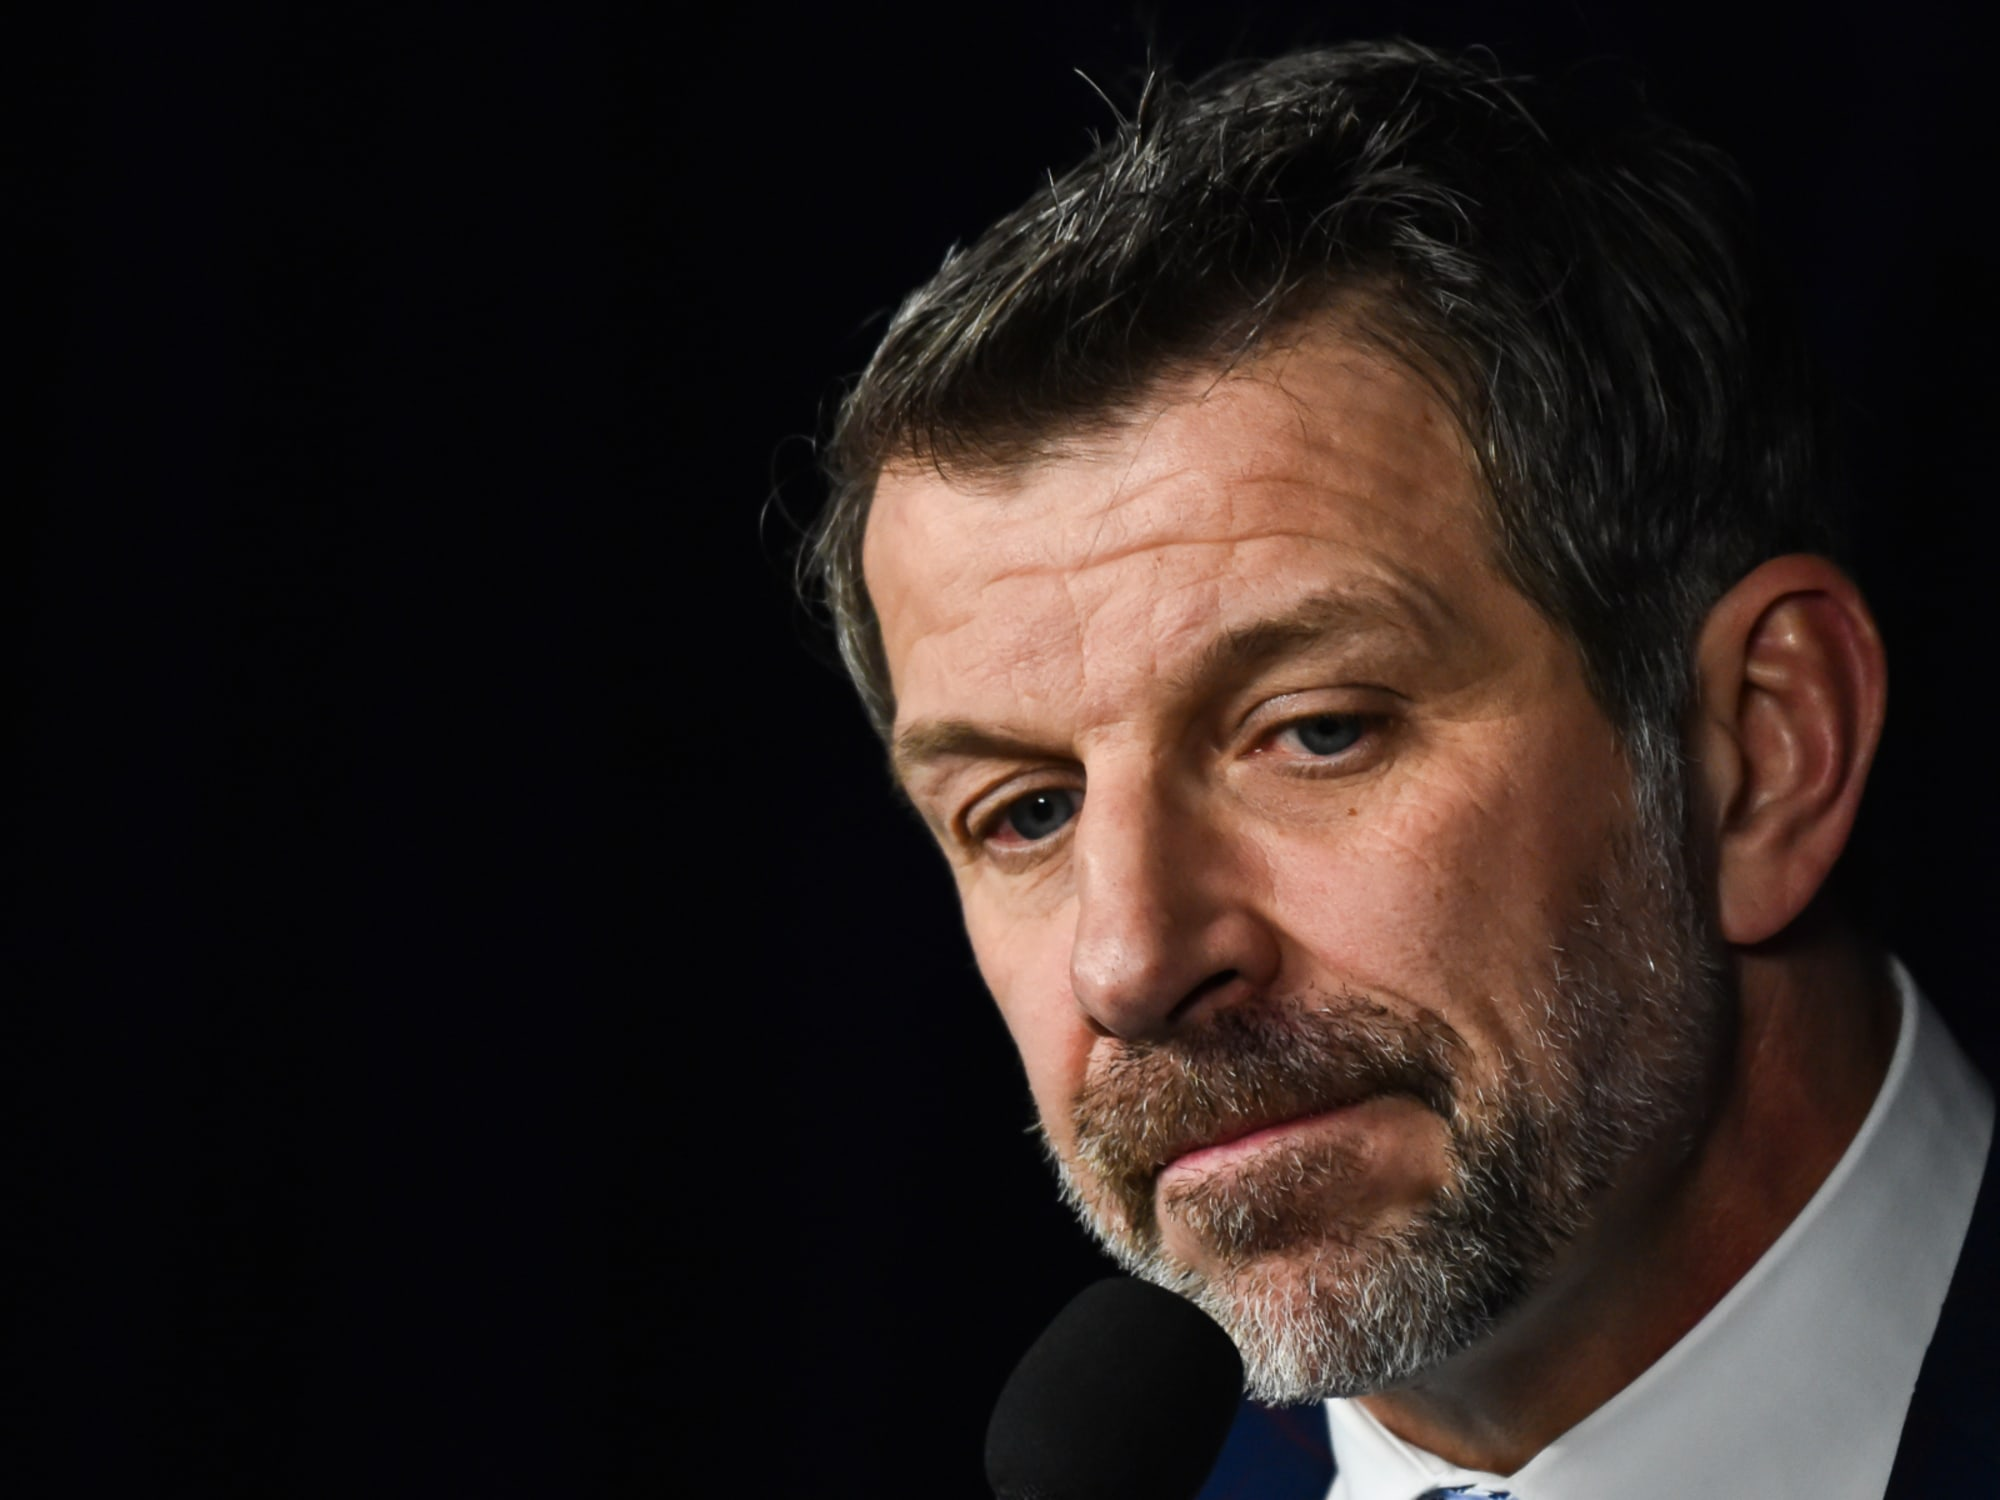 Montreal Canadiens: Should Marc Bergevin's Job be Safe in the Playoffs?